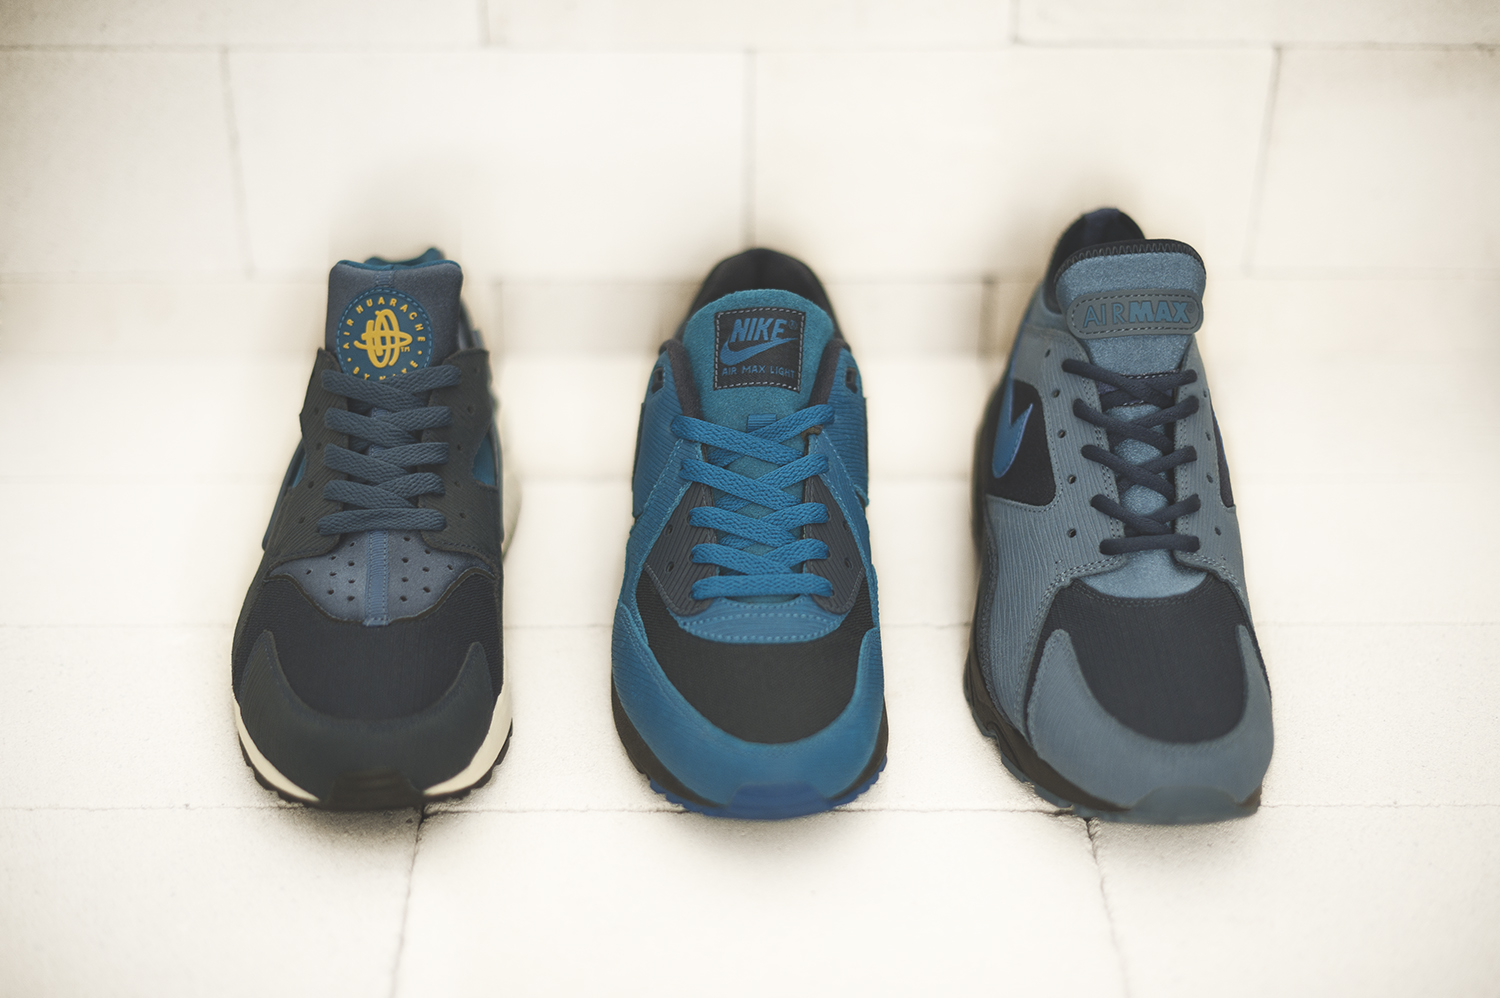 Nike x size? 'Army & Navy' Pack – size? Worldwide exclusive